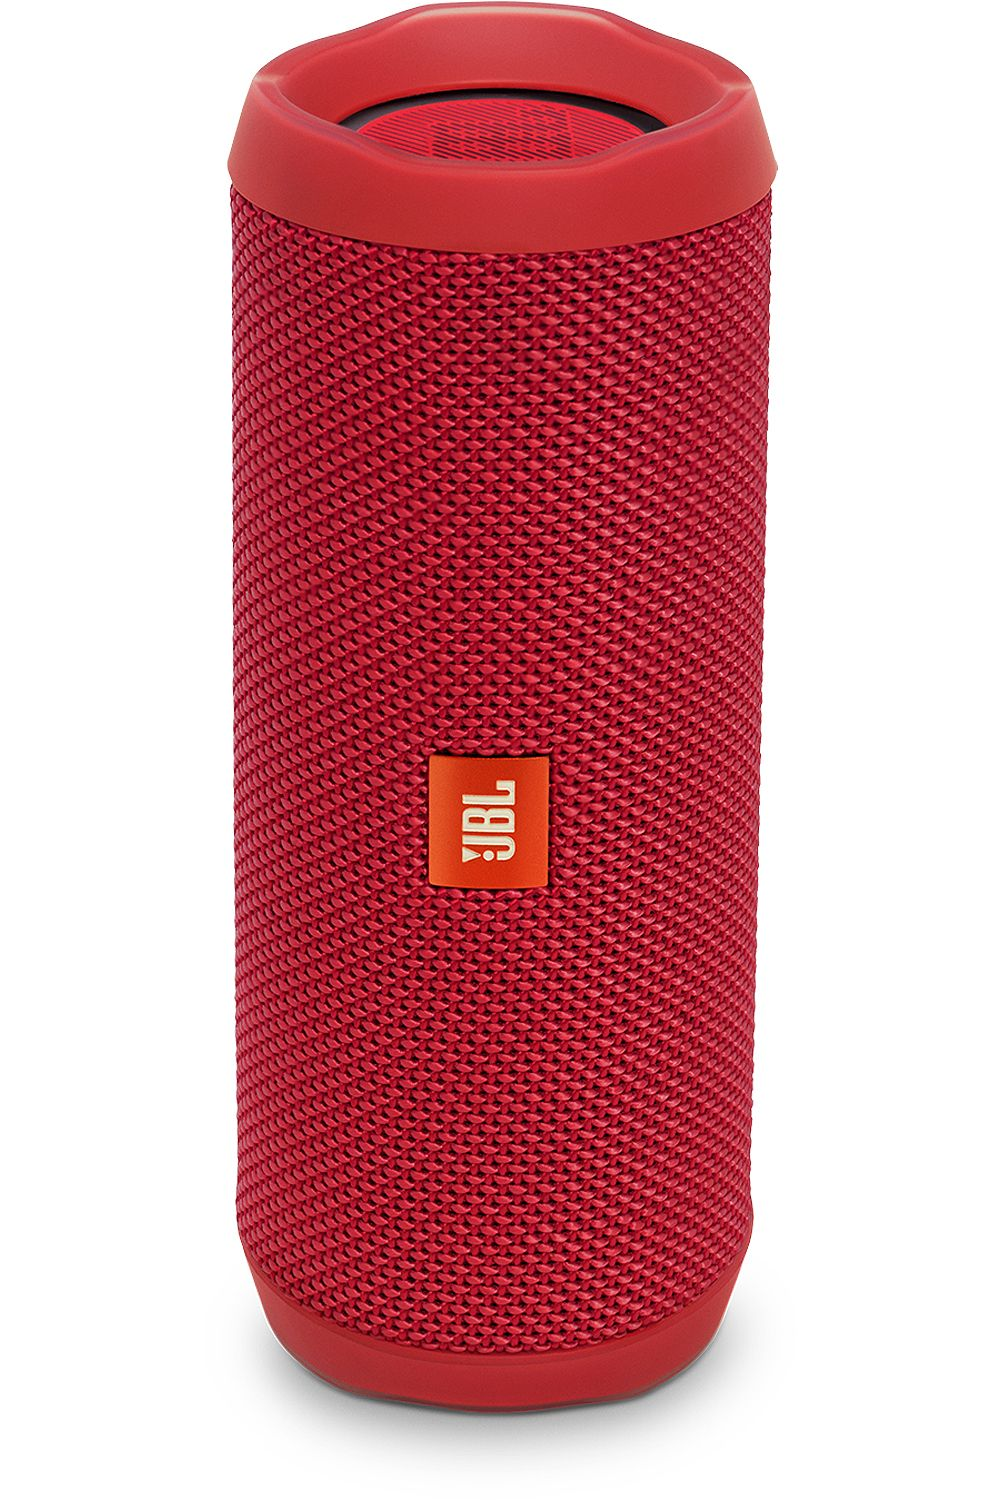 db572d5d6d6b JBL Flip 4 Red Wireless Portable Stereo Speaker - JBLFLIP4REDAM